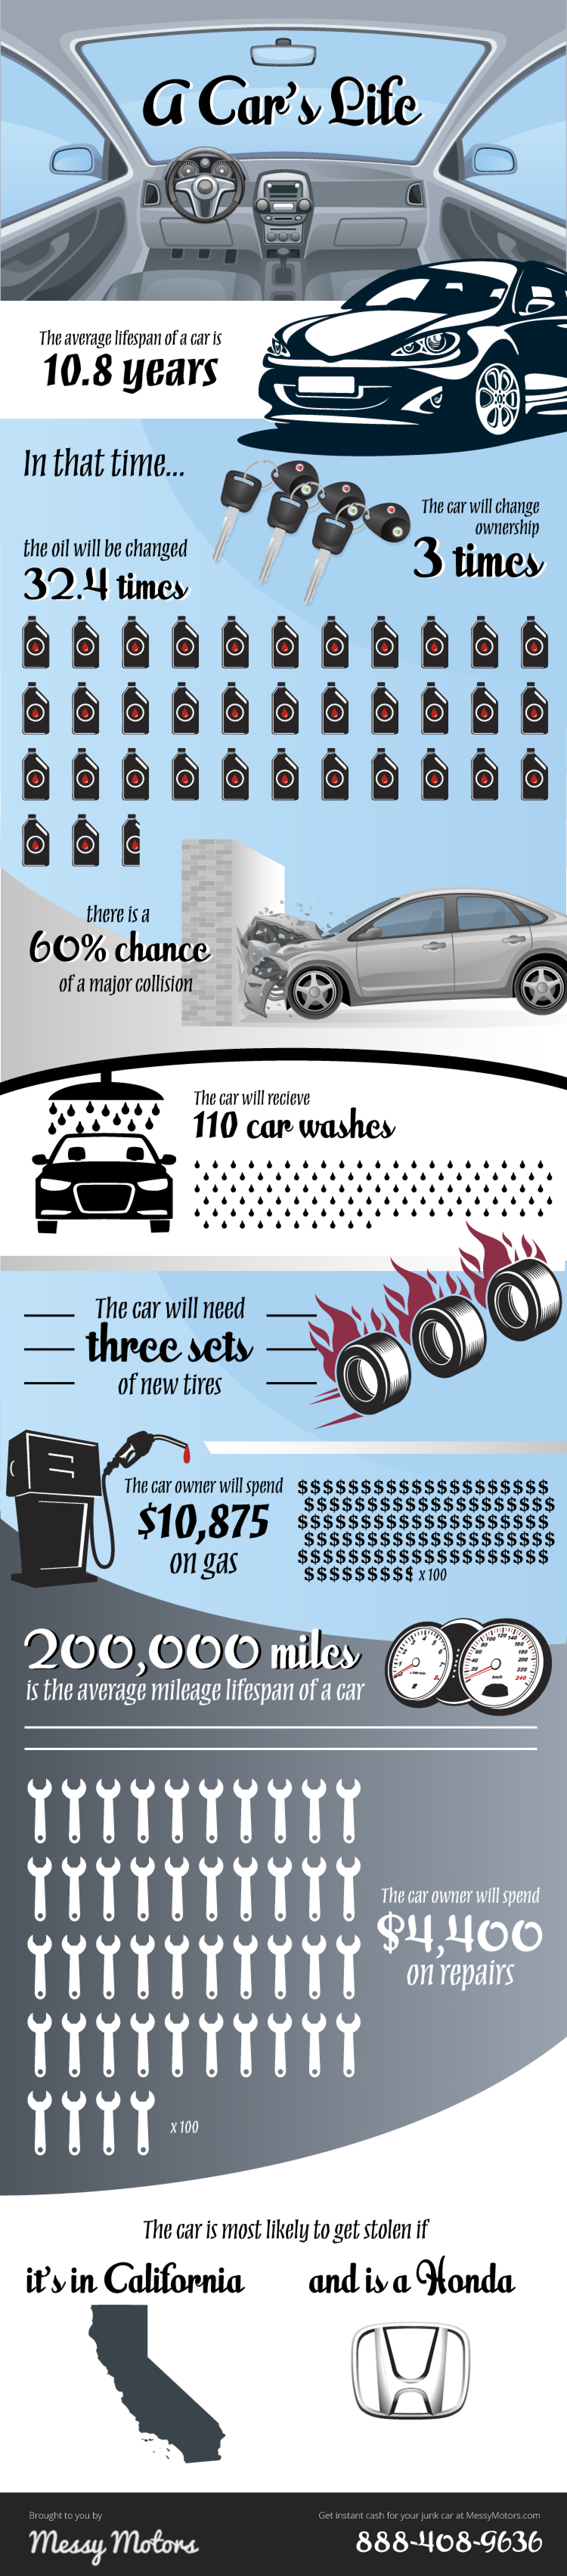 A Car's Life Infographic